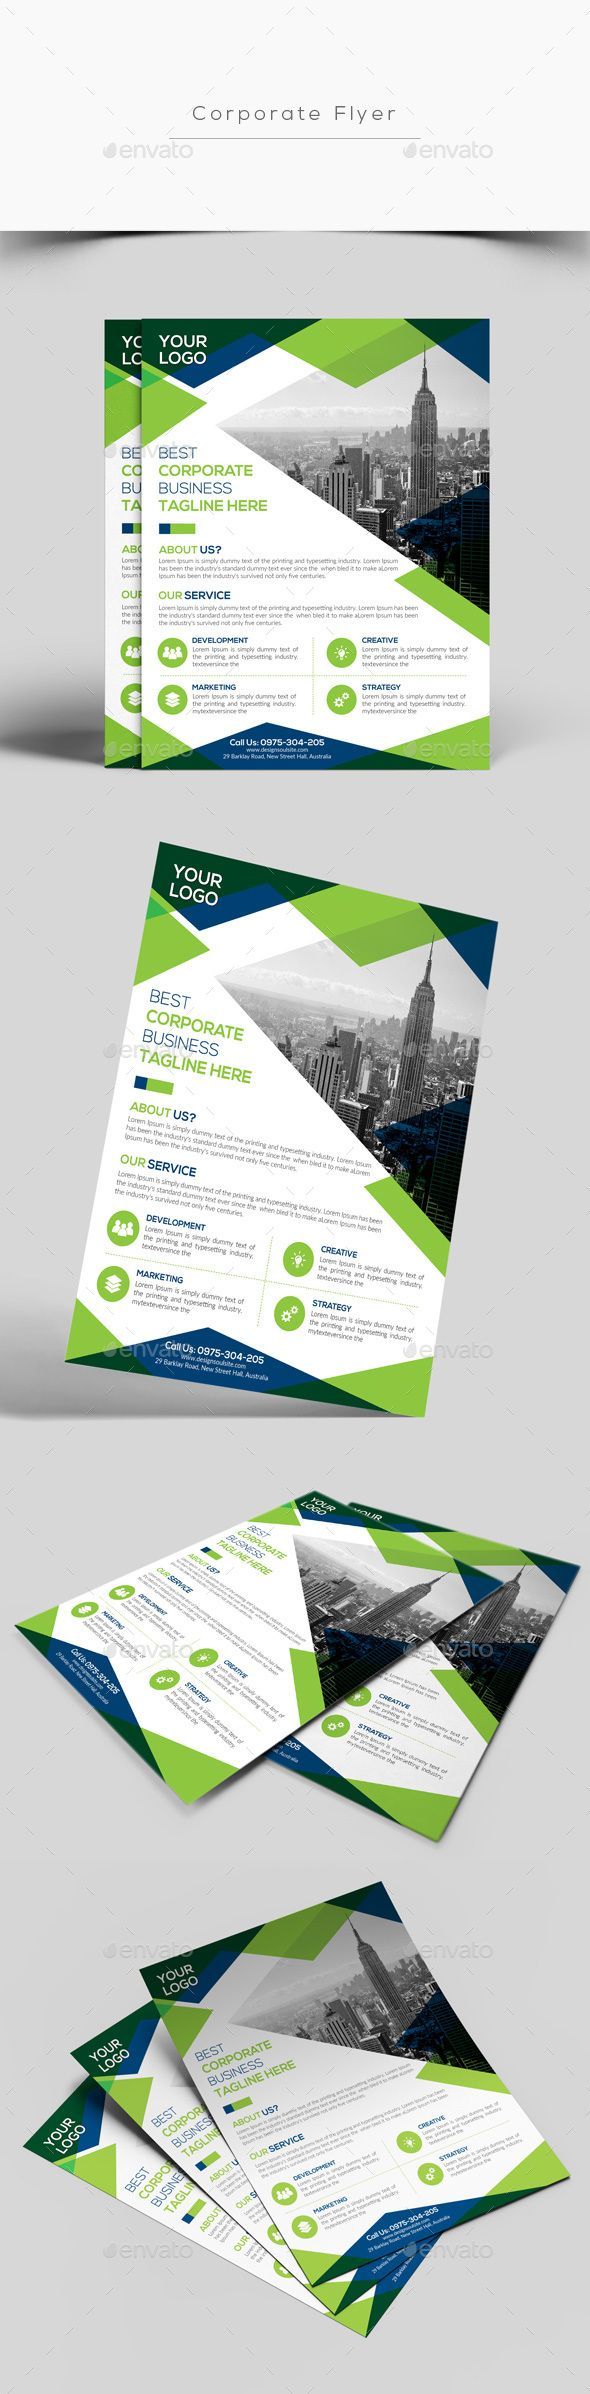 Corporate Flyer Template PSD #design Download: http://graphicriver.net/item/corporate-flyer/13843752?ref=ksioks